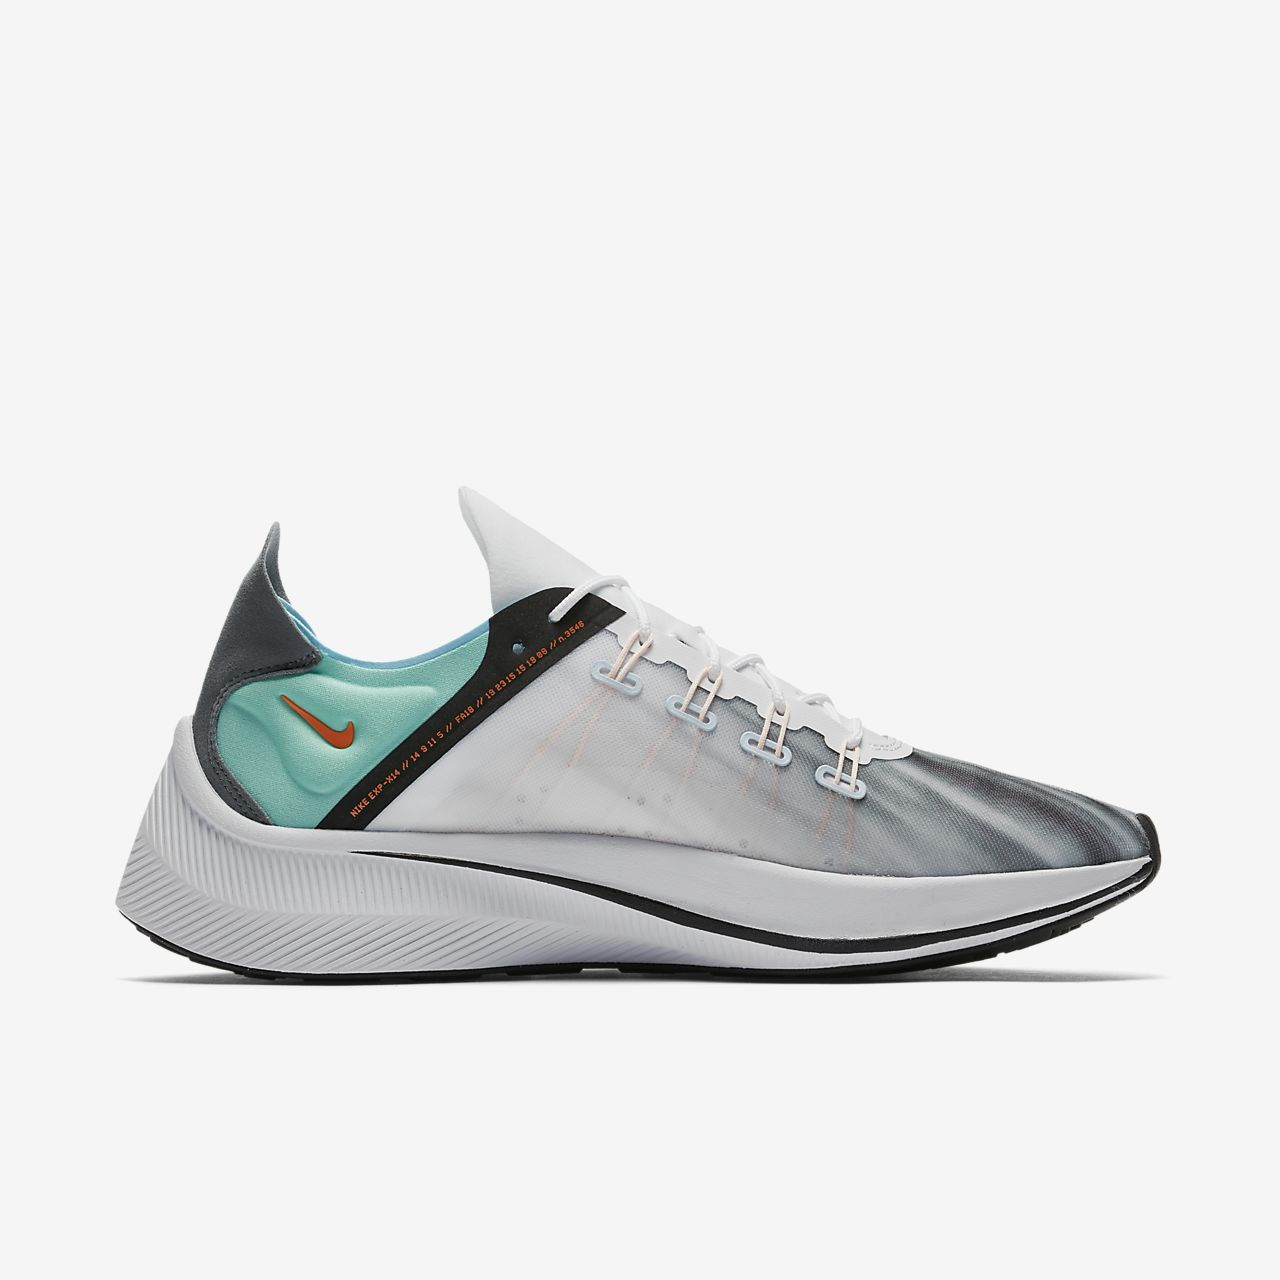 Nike EXP X14 QS Men's Shoe